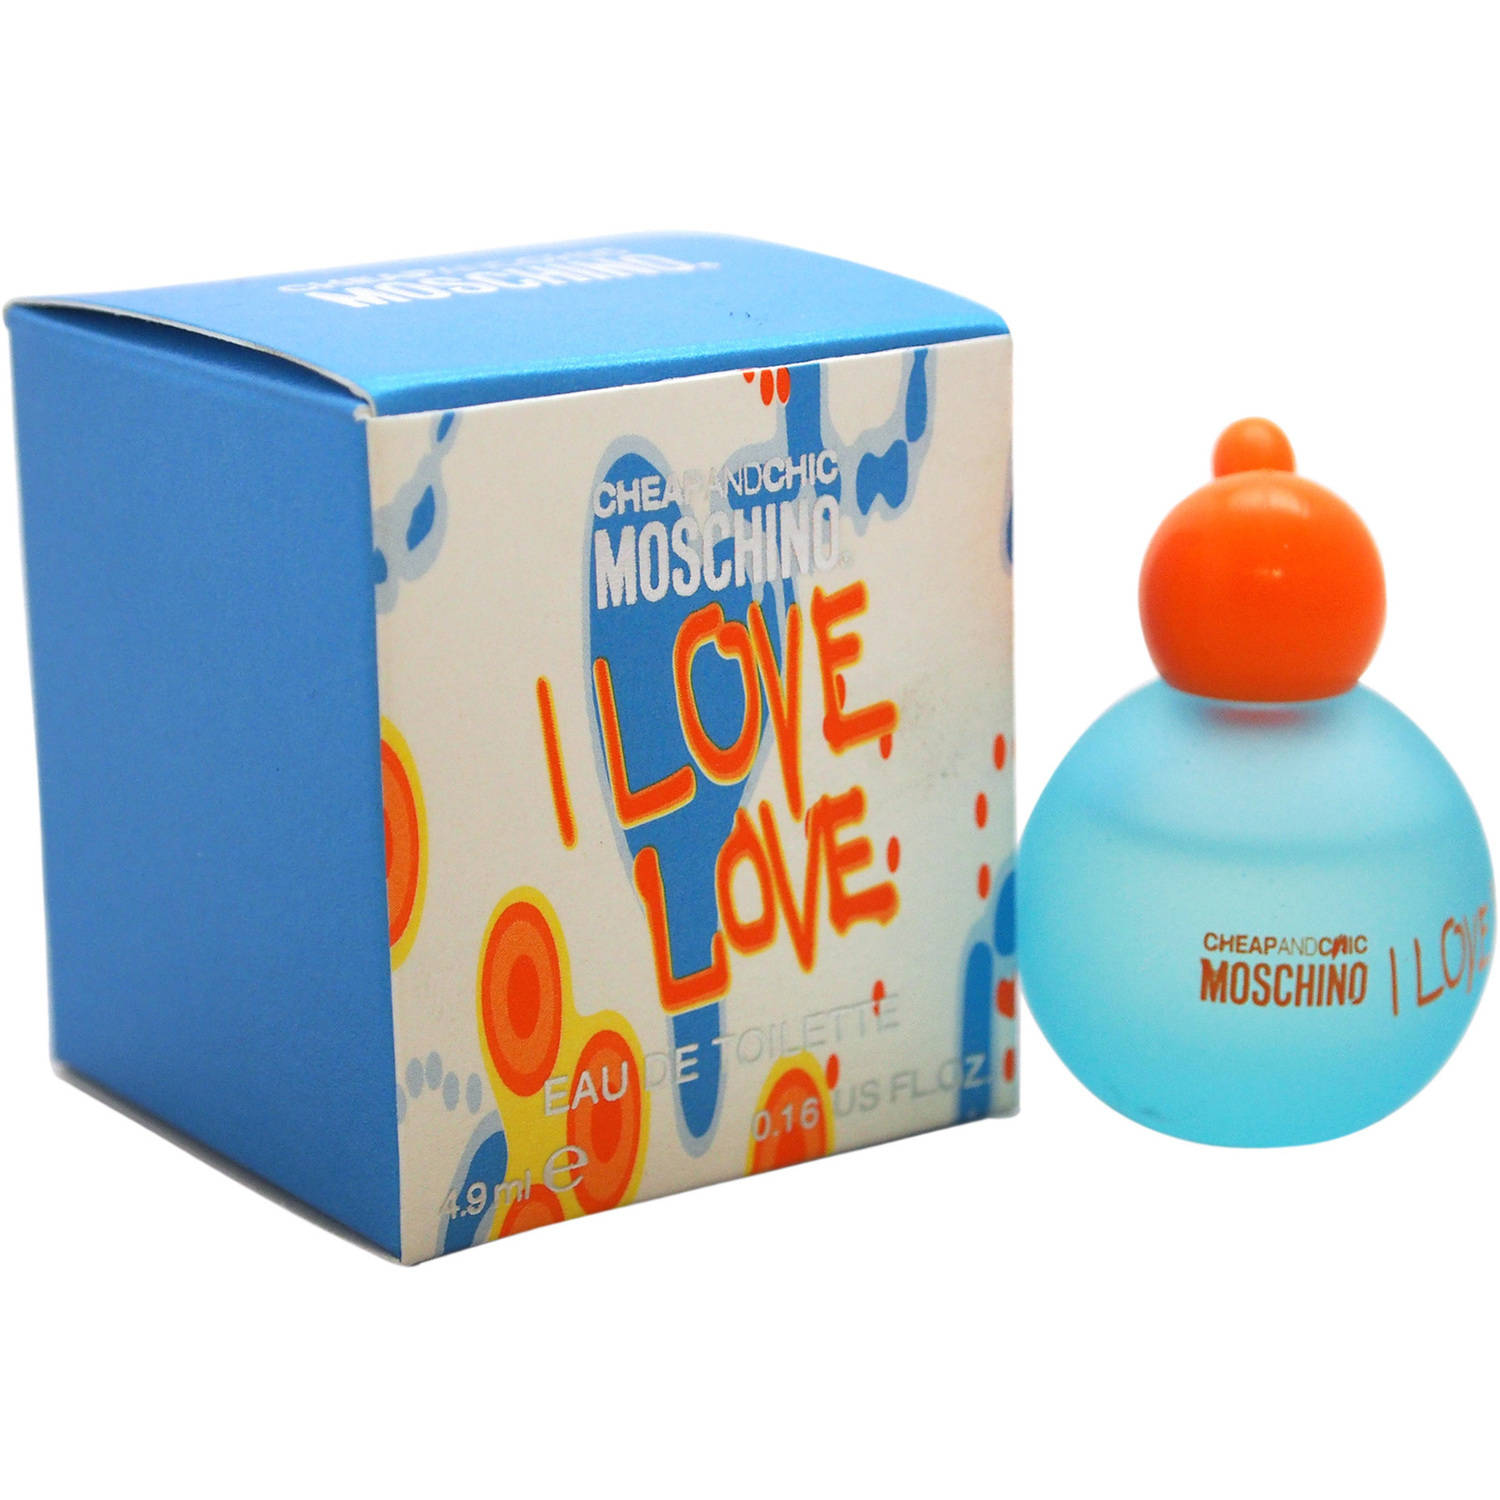 I Love Love Cheap And Chic by Moschino for Women, 4.9 ml